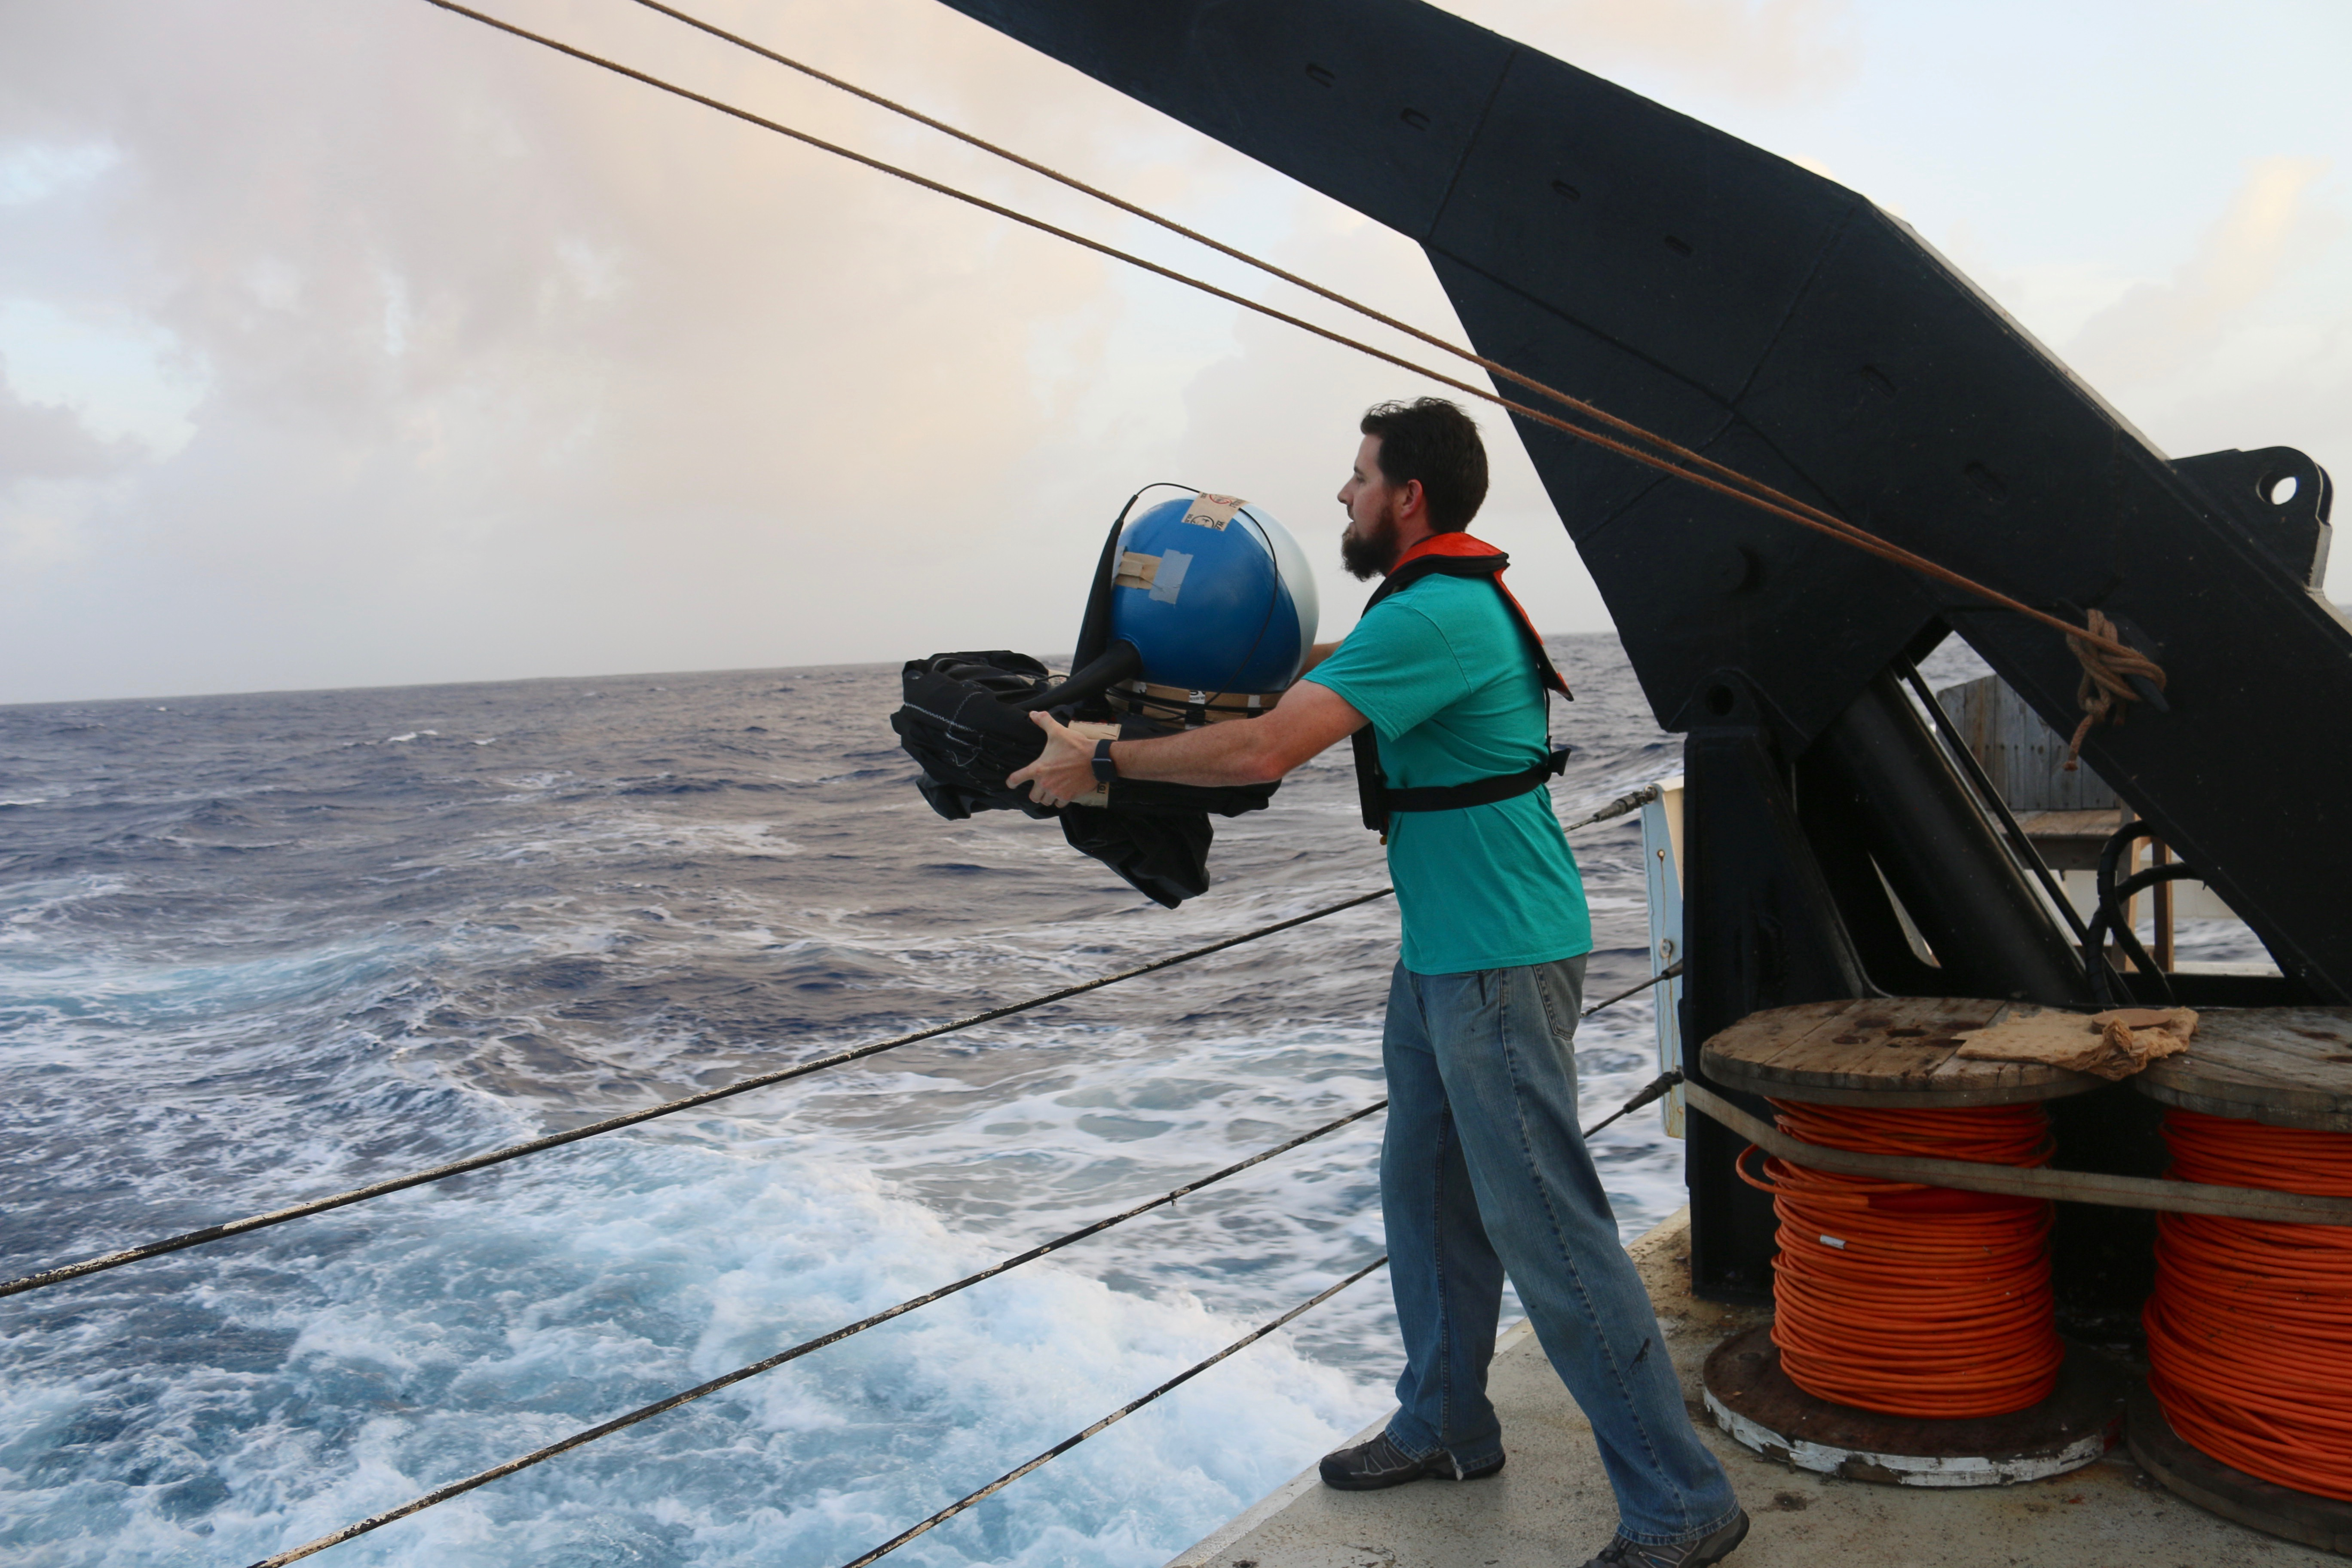 Scientist deploying a surface drifting buoy. Image credit: NOAA